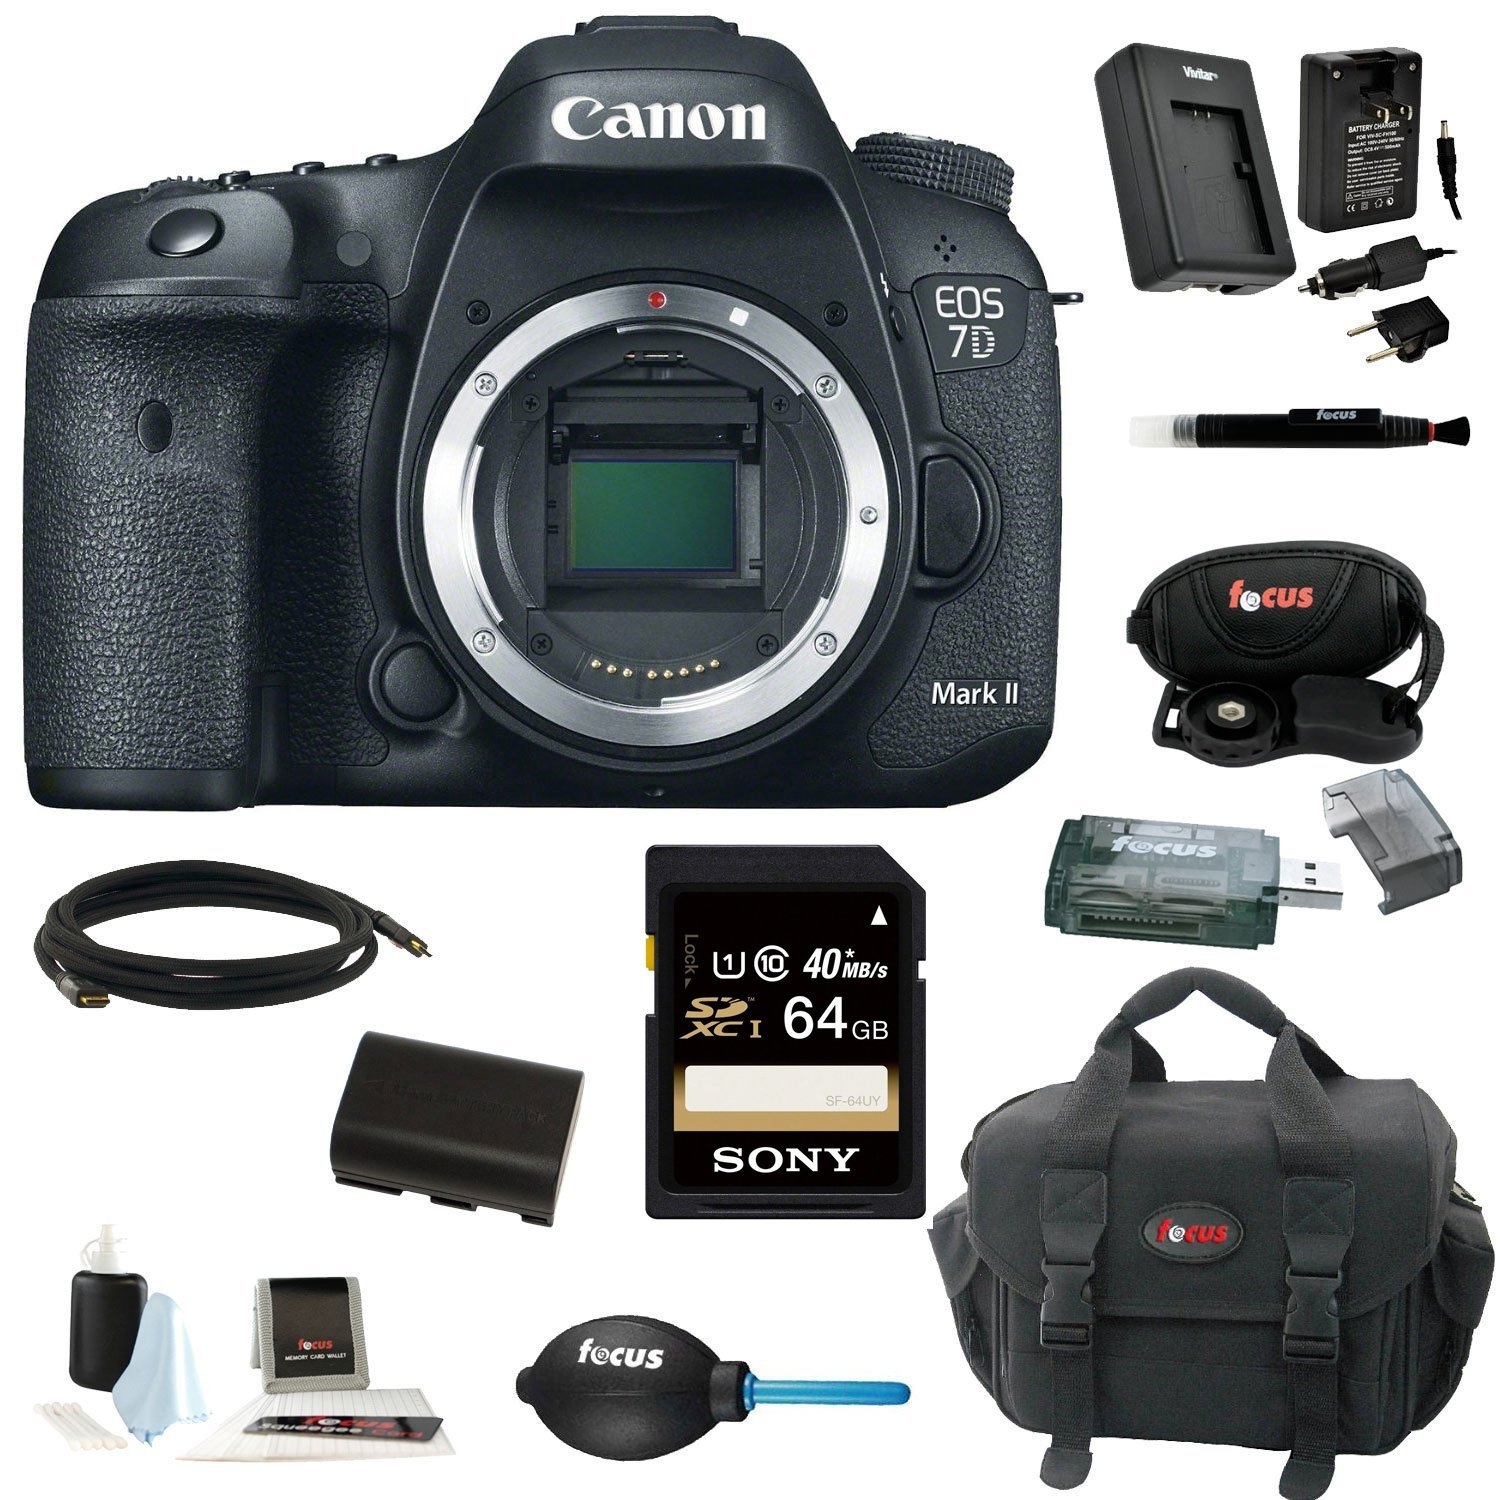 Canon EOS 7D Mark II Digital SLR Camera (Body Only) with 64GB Deluxe Accessory Kit by Canon